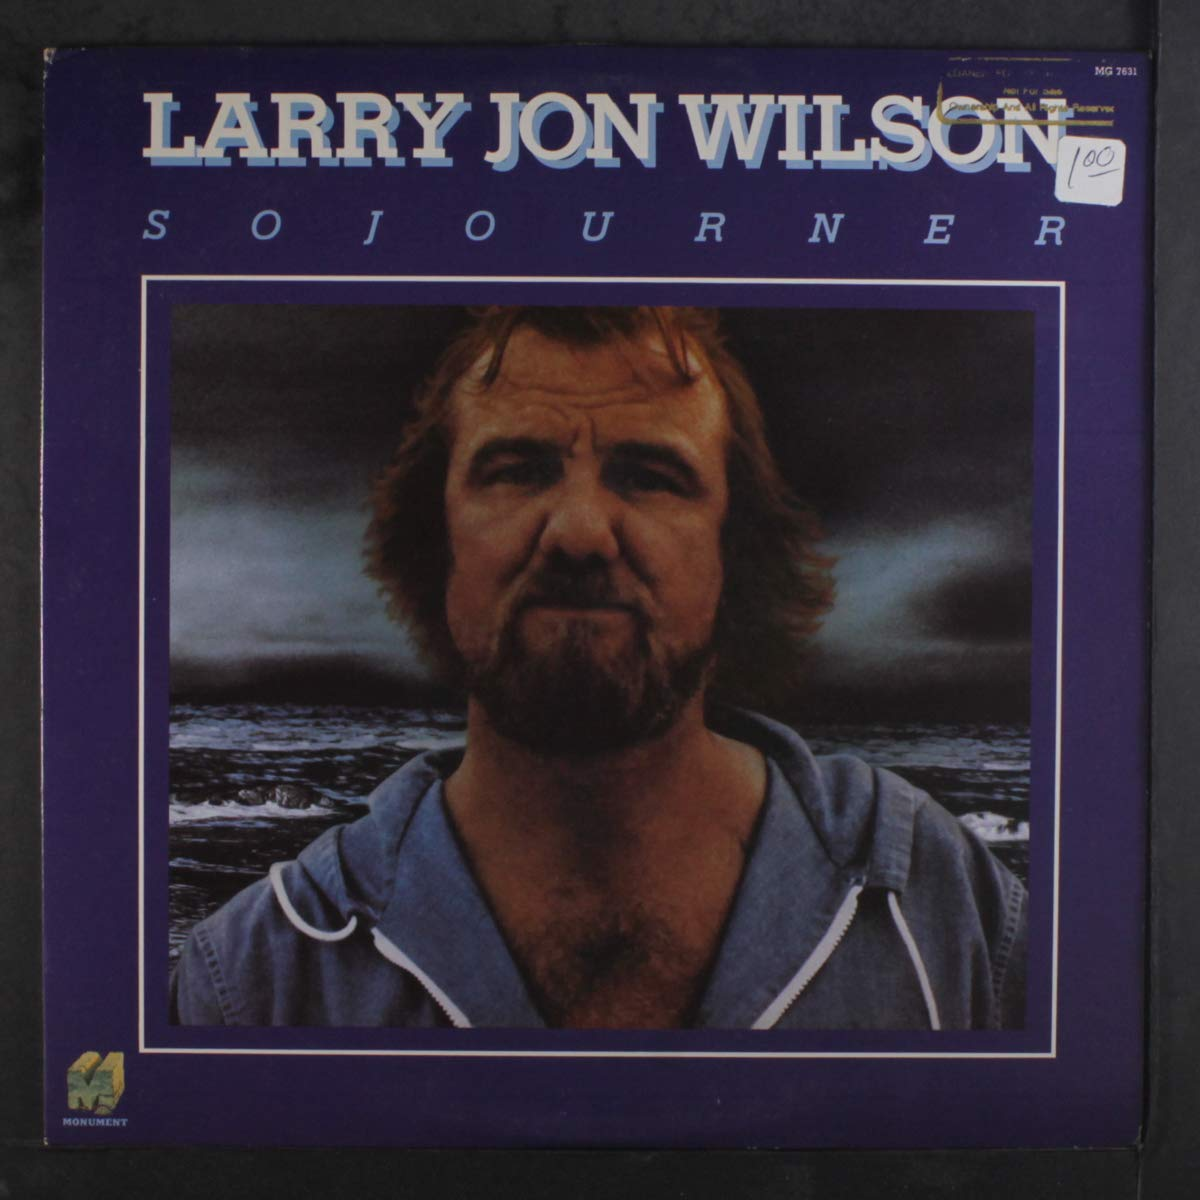 Larry Jon Wilson Sojourner Amazon Com Music